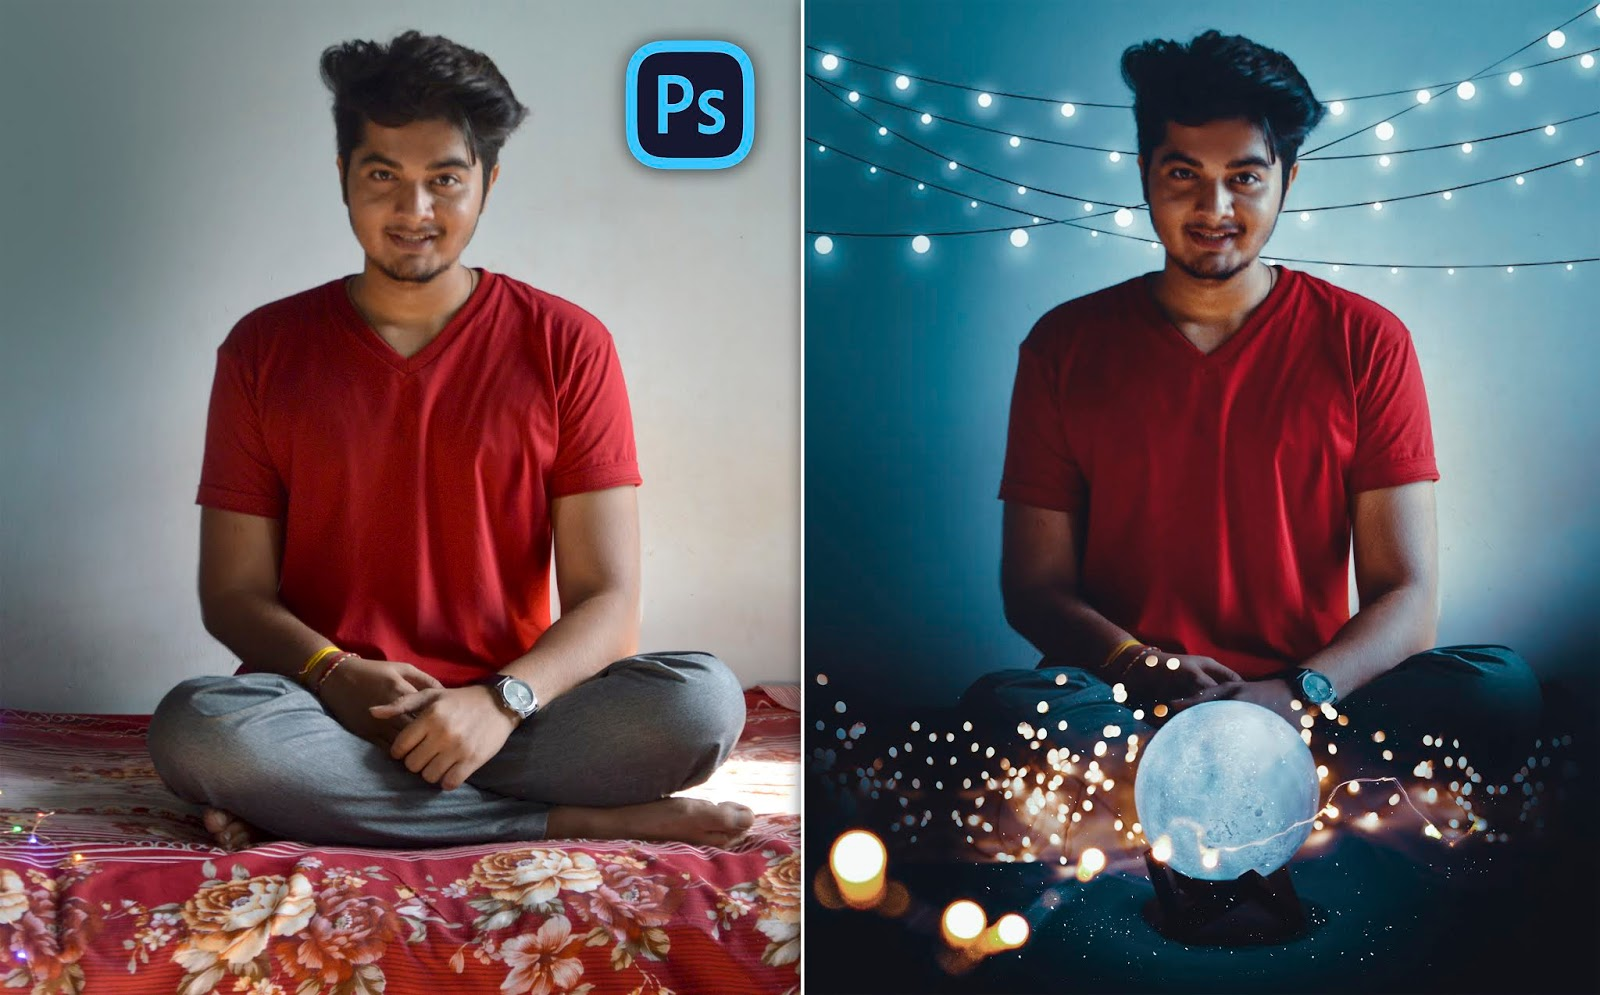 Lightning Ball | Brandon Woelfel Style Fairy Lights on Bed Photo Editing in Photoshop